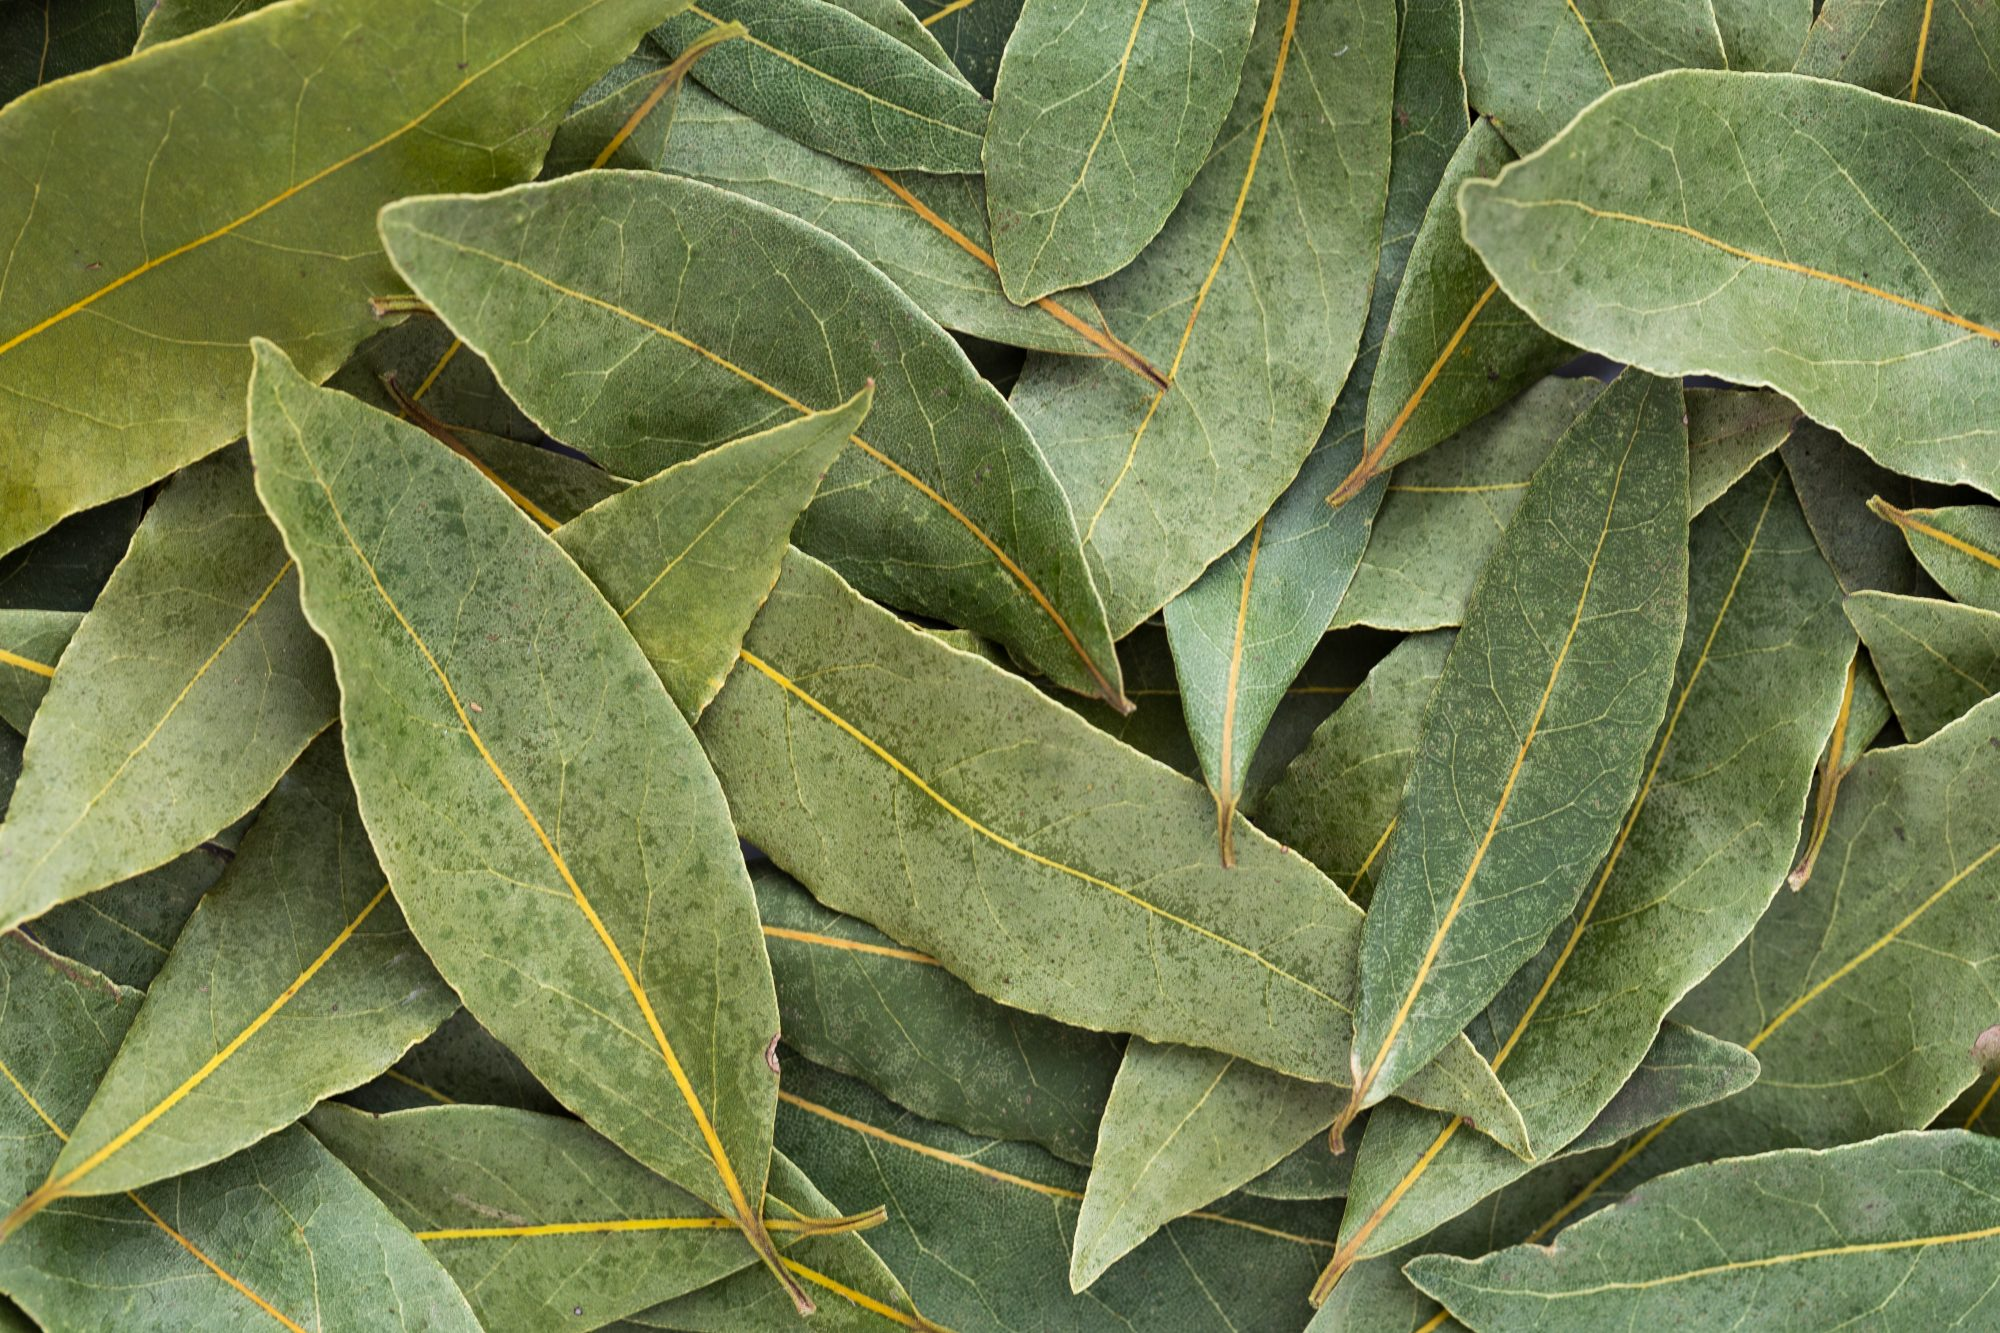 Bay Leaves Getty 1/27/20